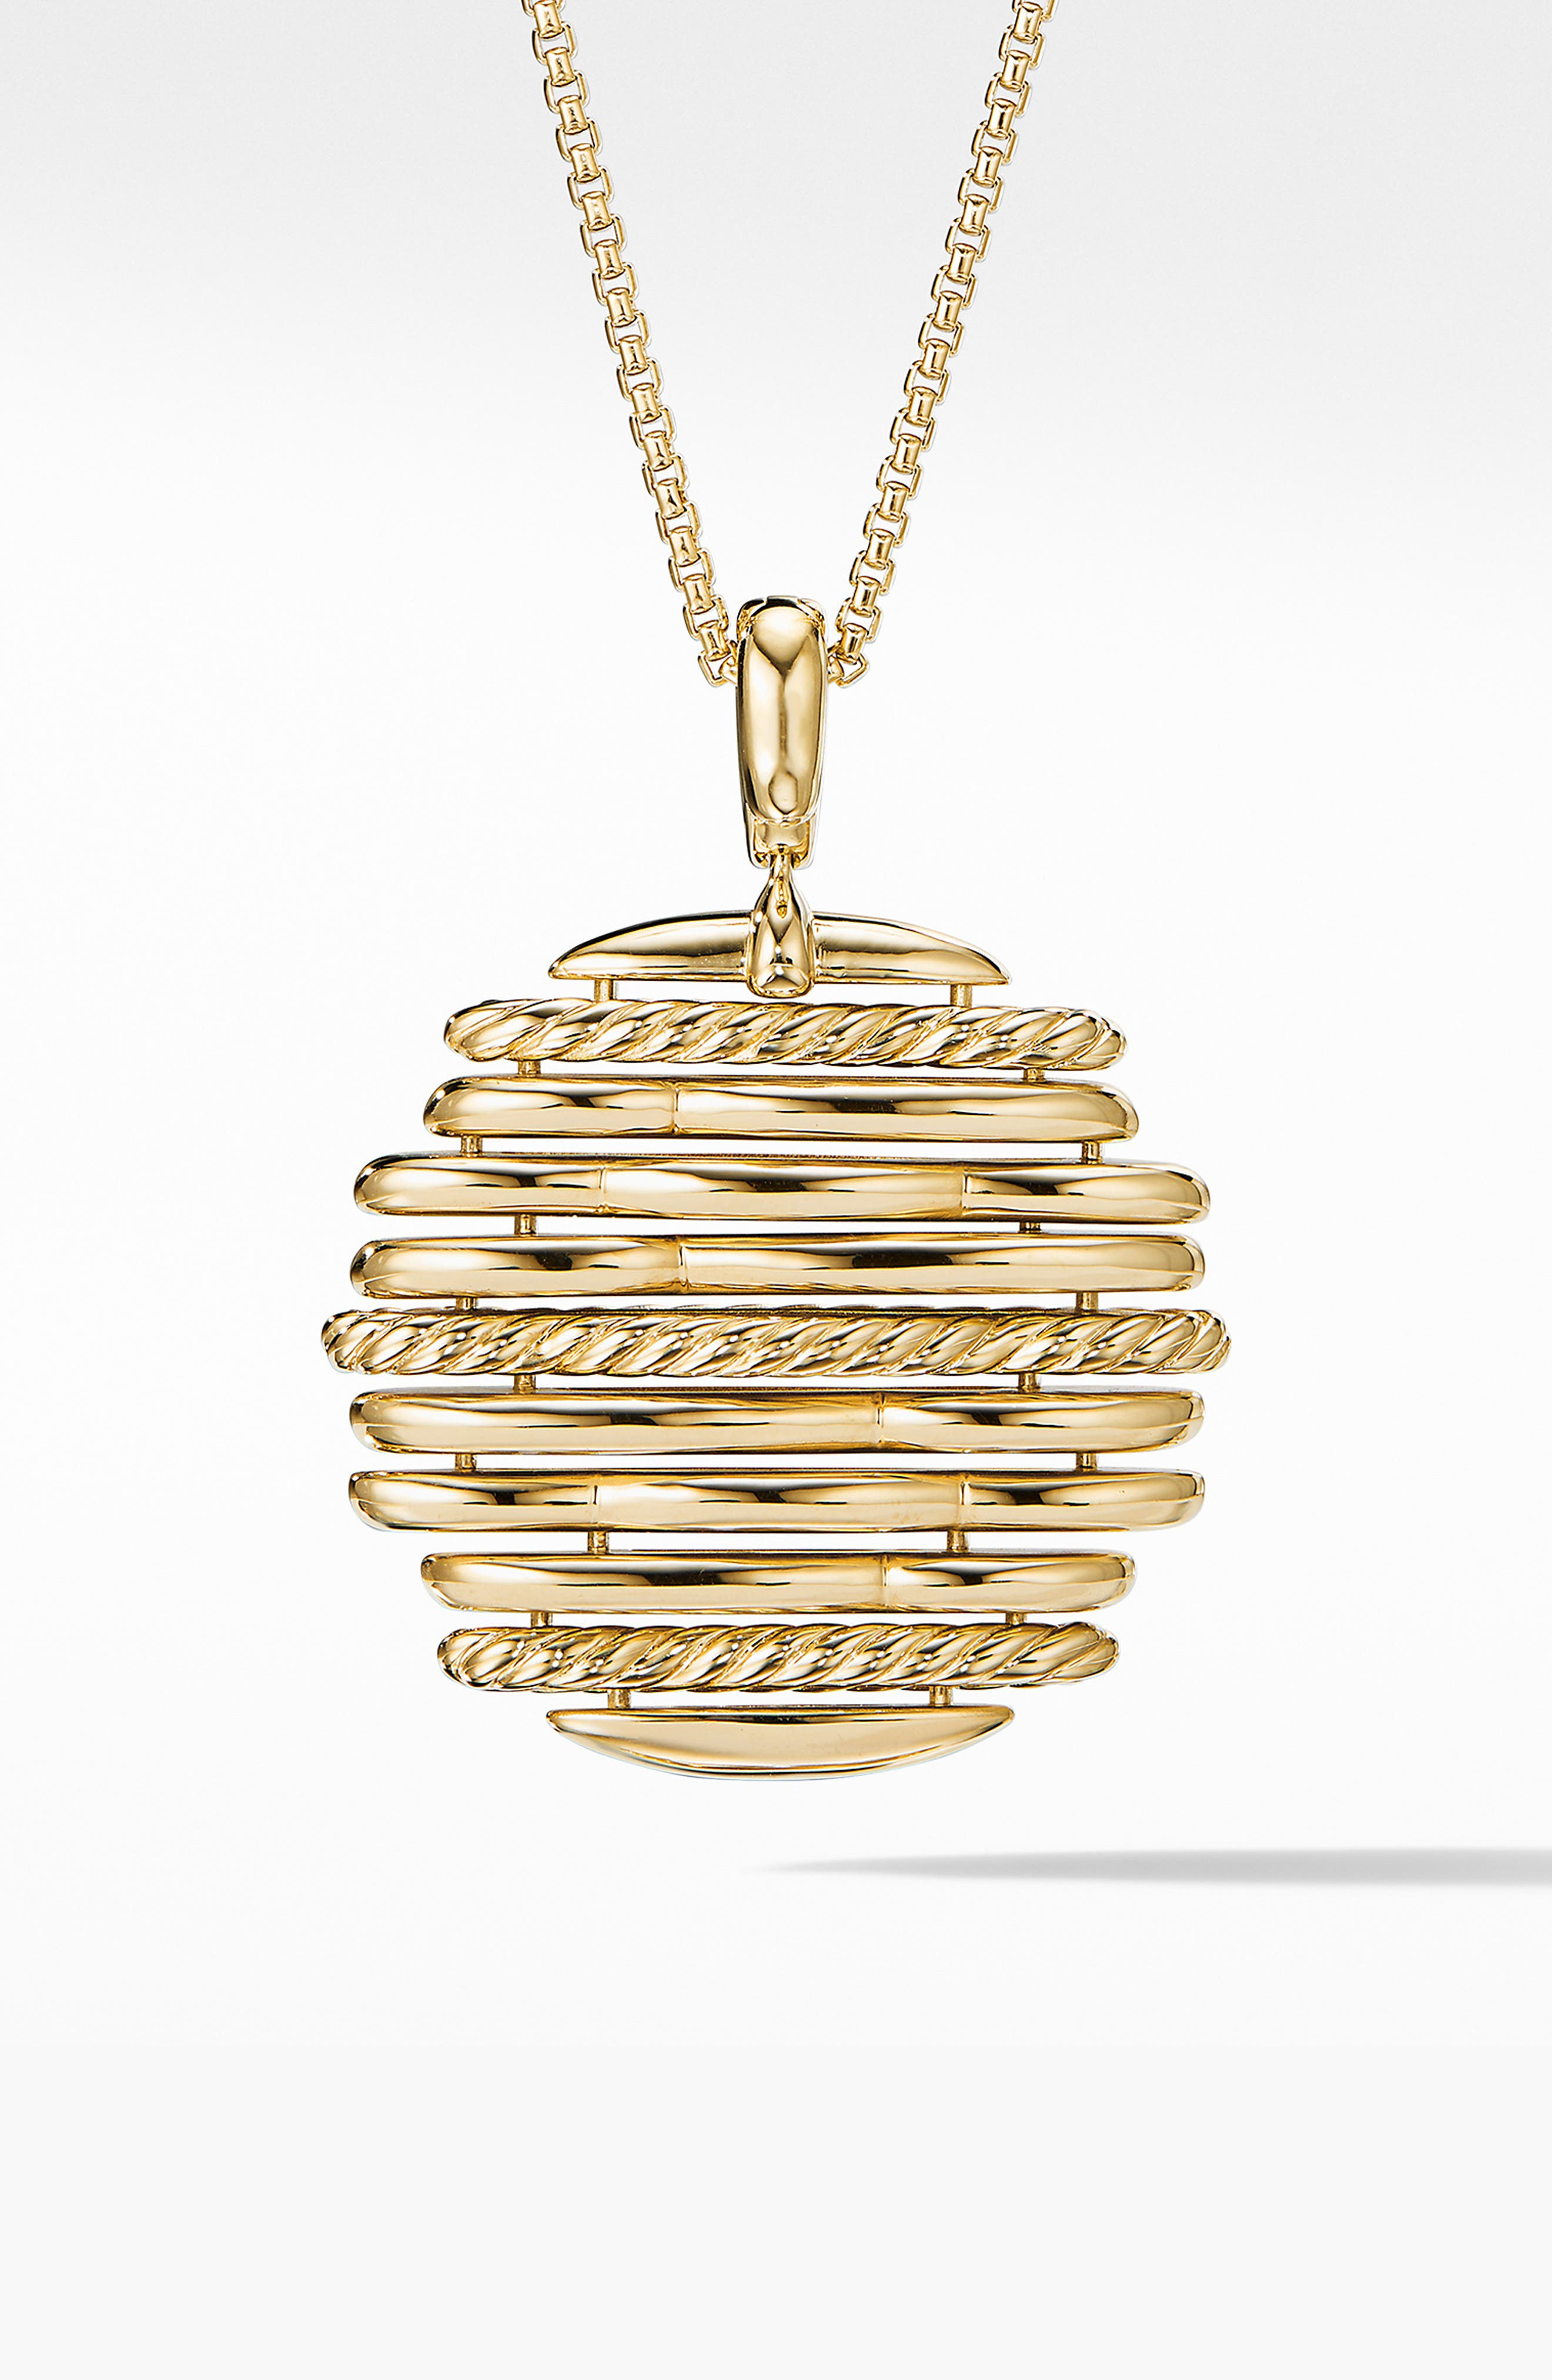 Tides Pendant Necklace in 18K Yellow Gold with Diamonds,                             Alternate thumbnail 3, color,                             GOLD/ DIAMOND